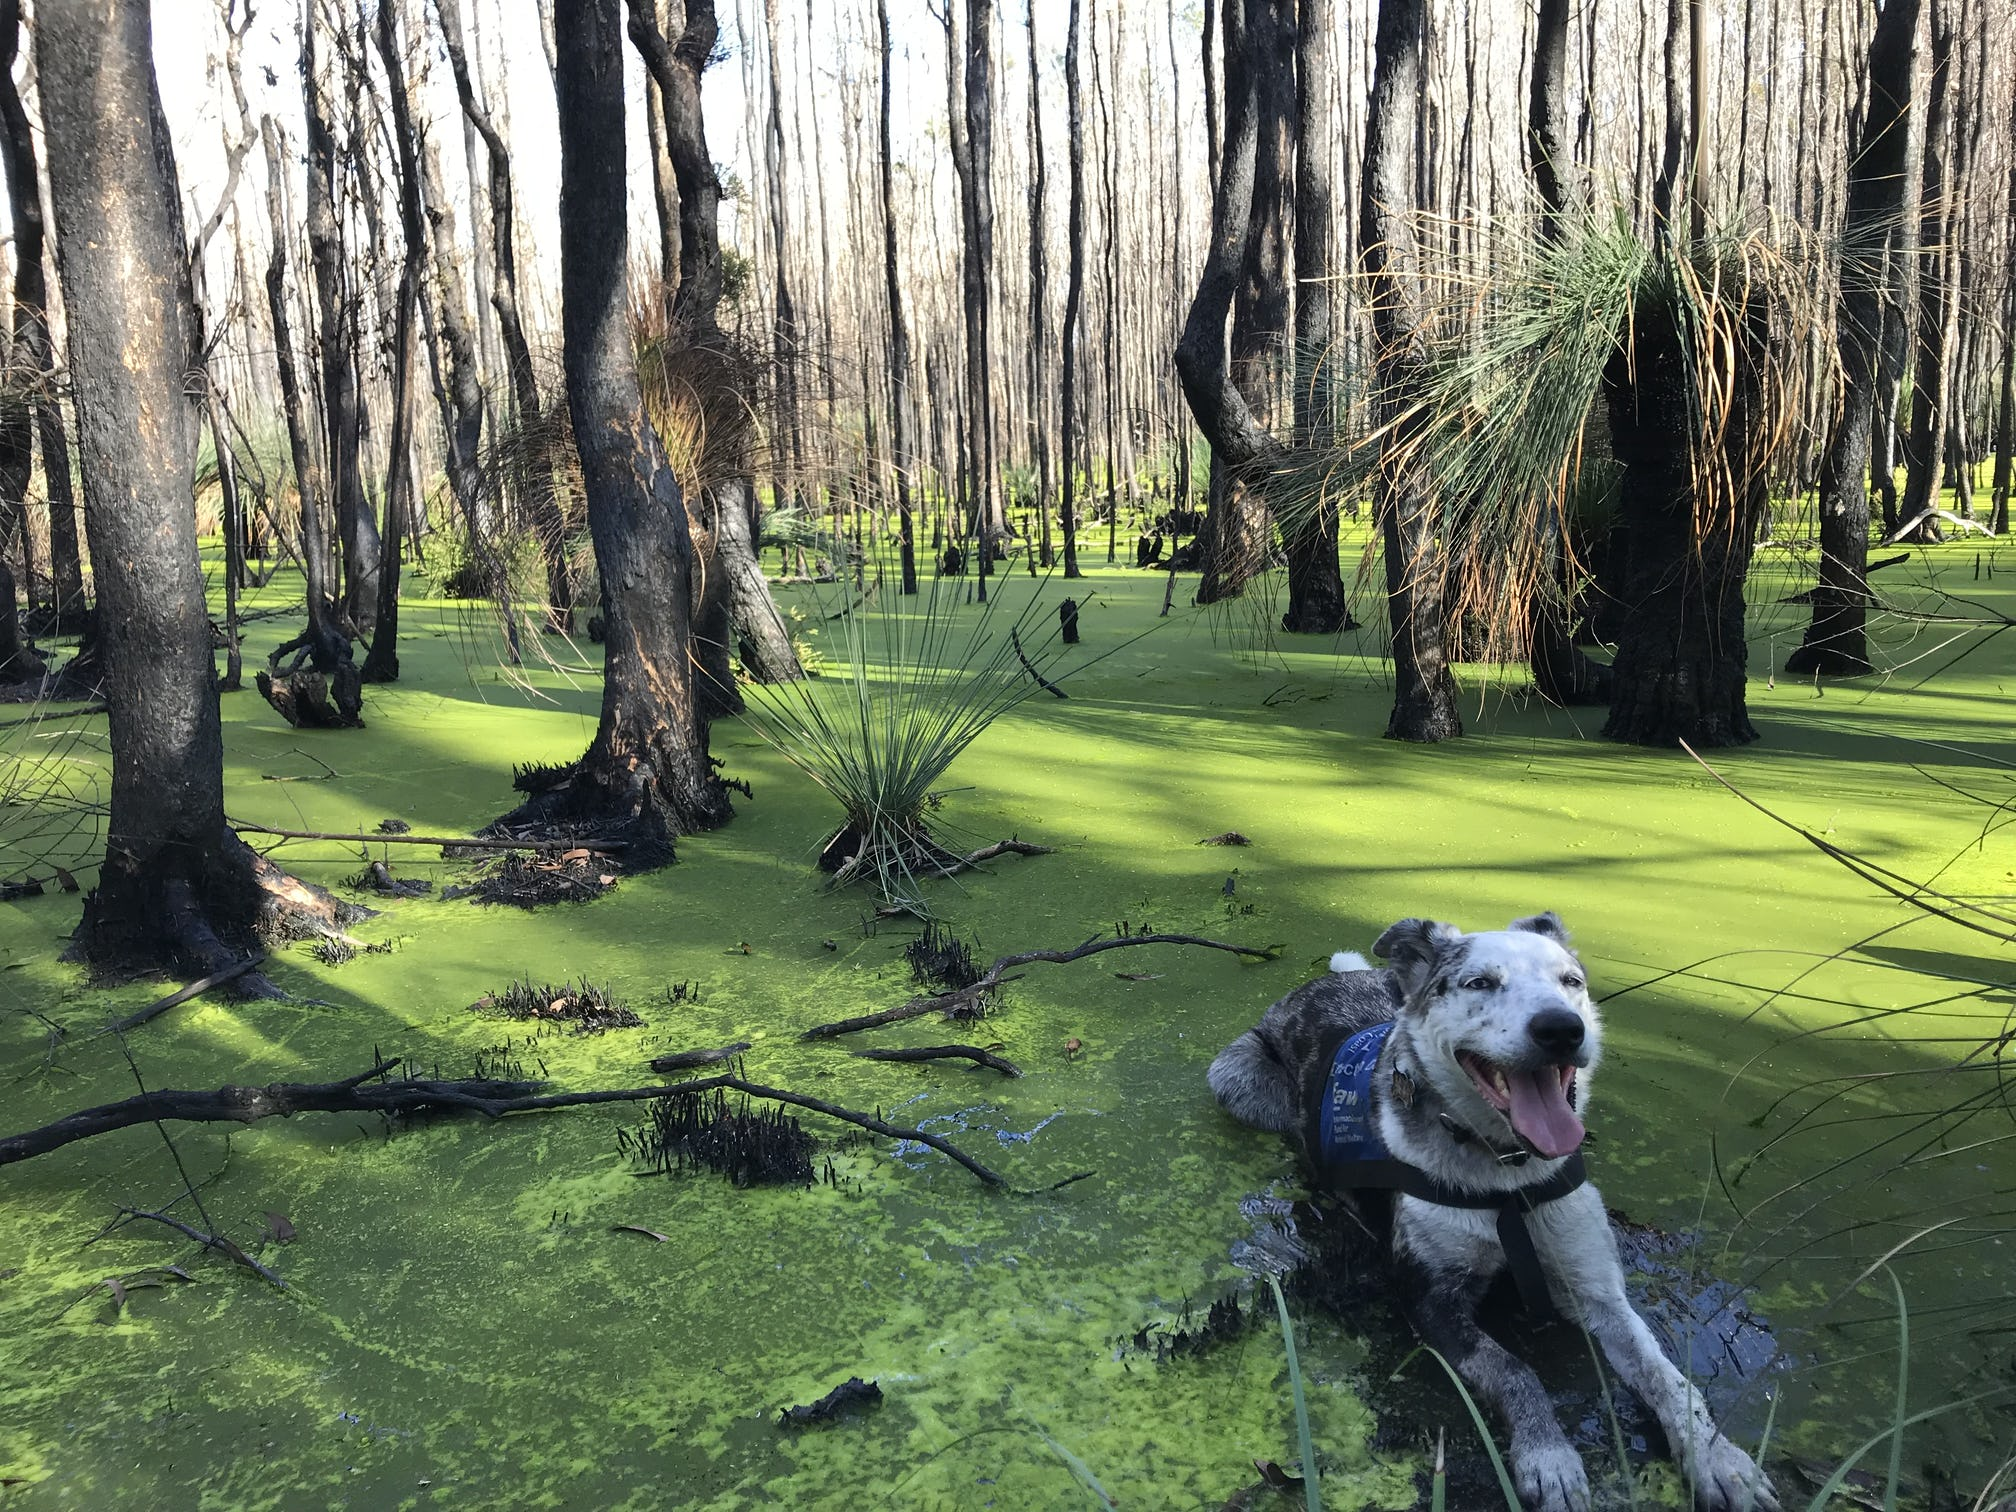 Bear cooling off in a bright green pond photo credit USC